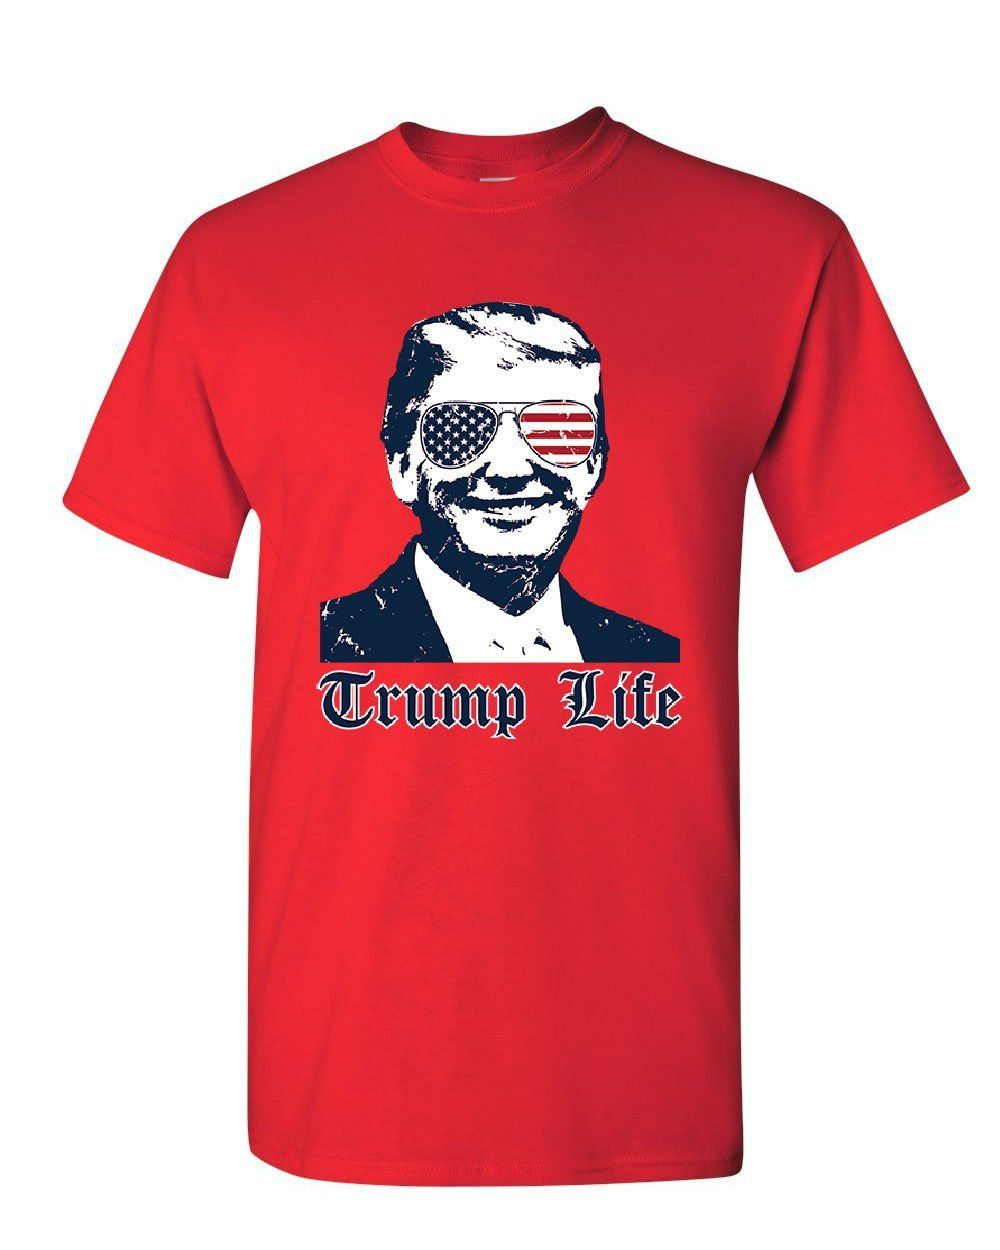 Trump Life Youth T-Shirt 45th MAGA Keep America Great Thug Life Parody Kids Tee